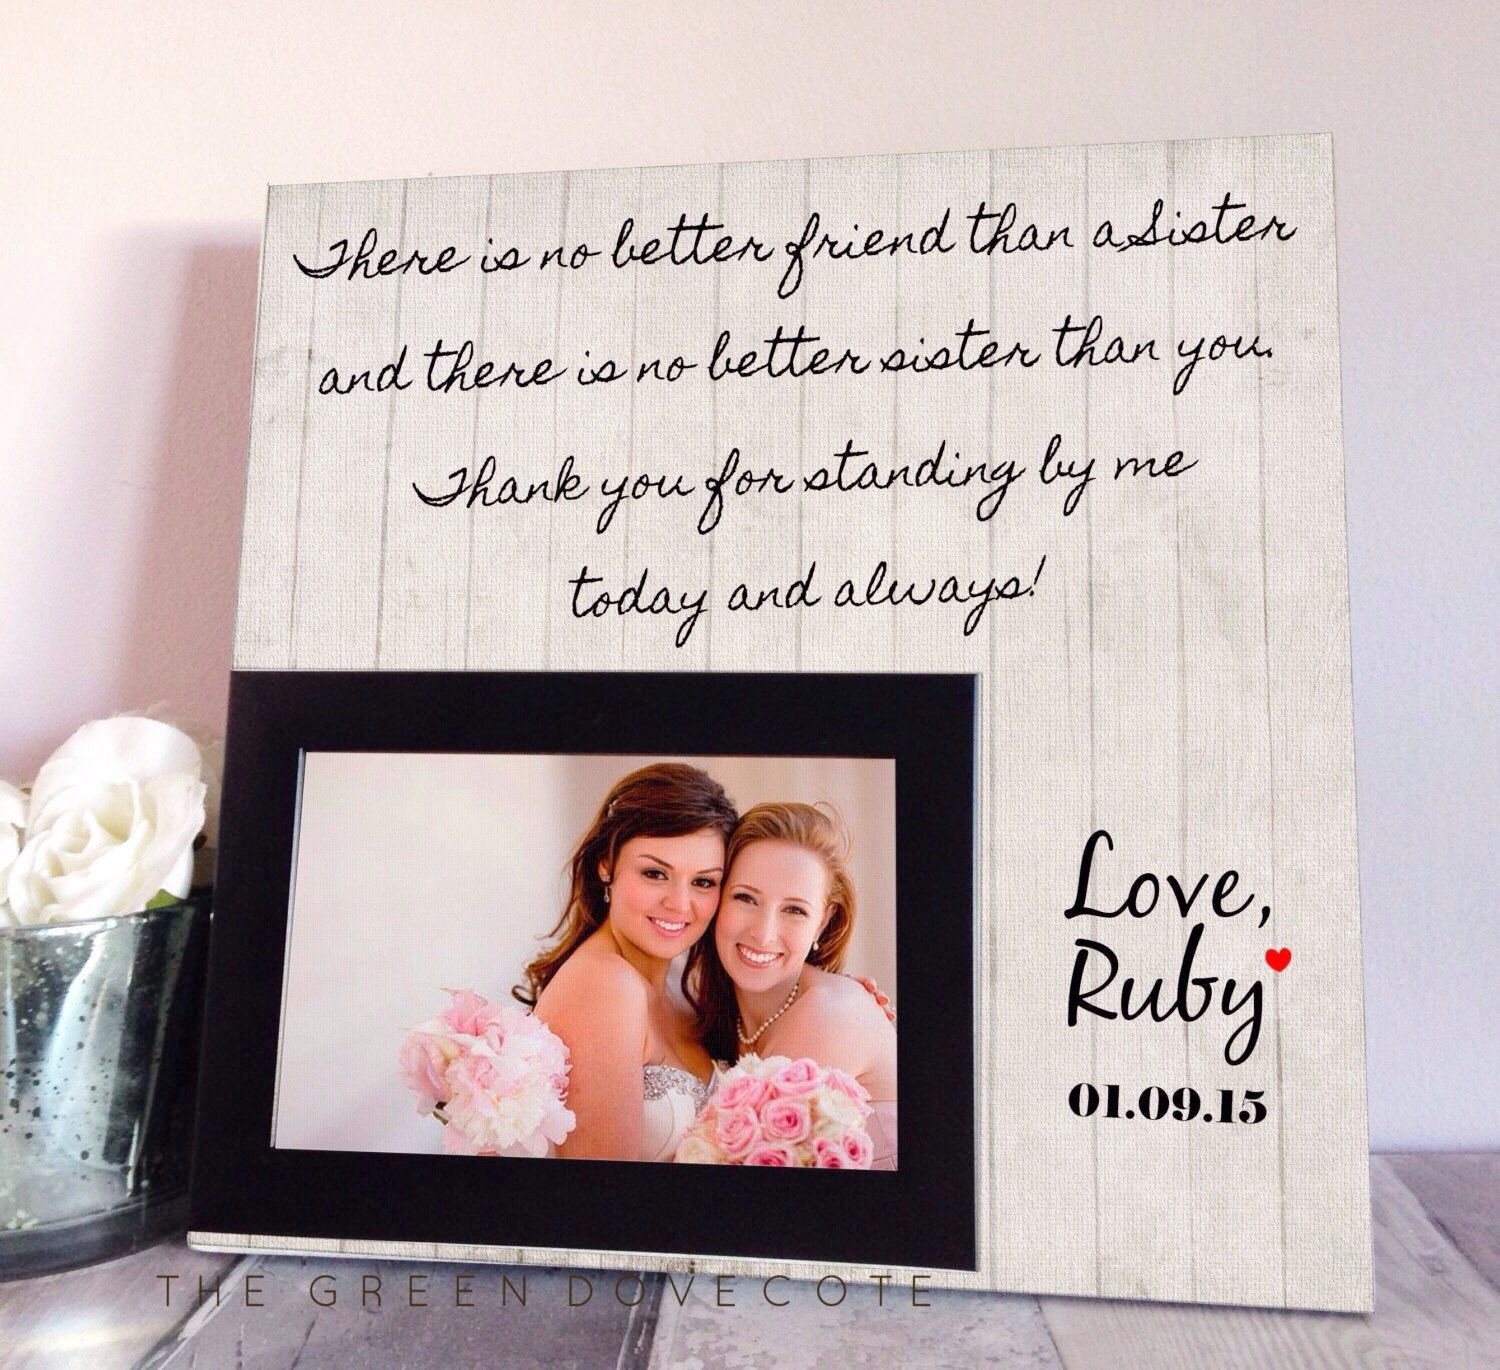 Cool Wedding Gift Ideas For Sister You Can Consider Sister Wedding Gift Sentimental Wedding Best Friend Wedding Gifts